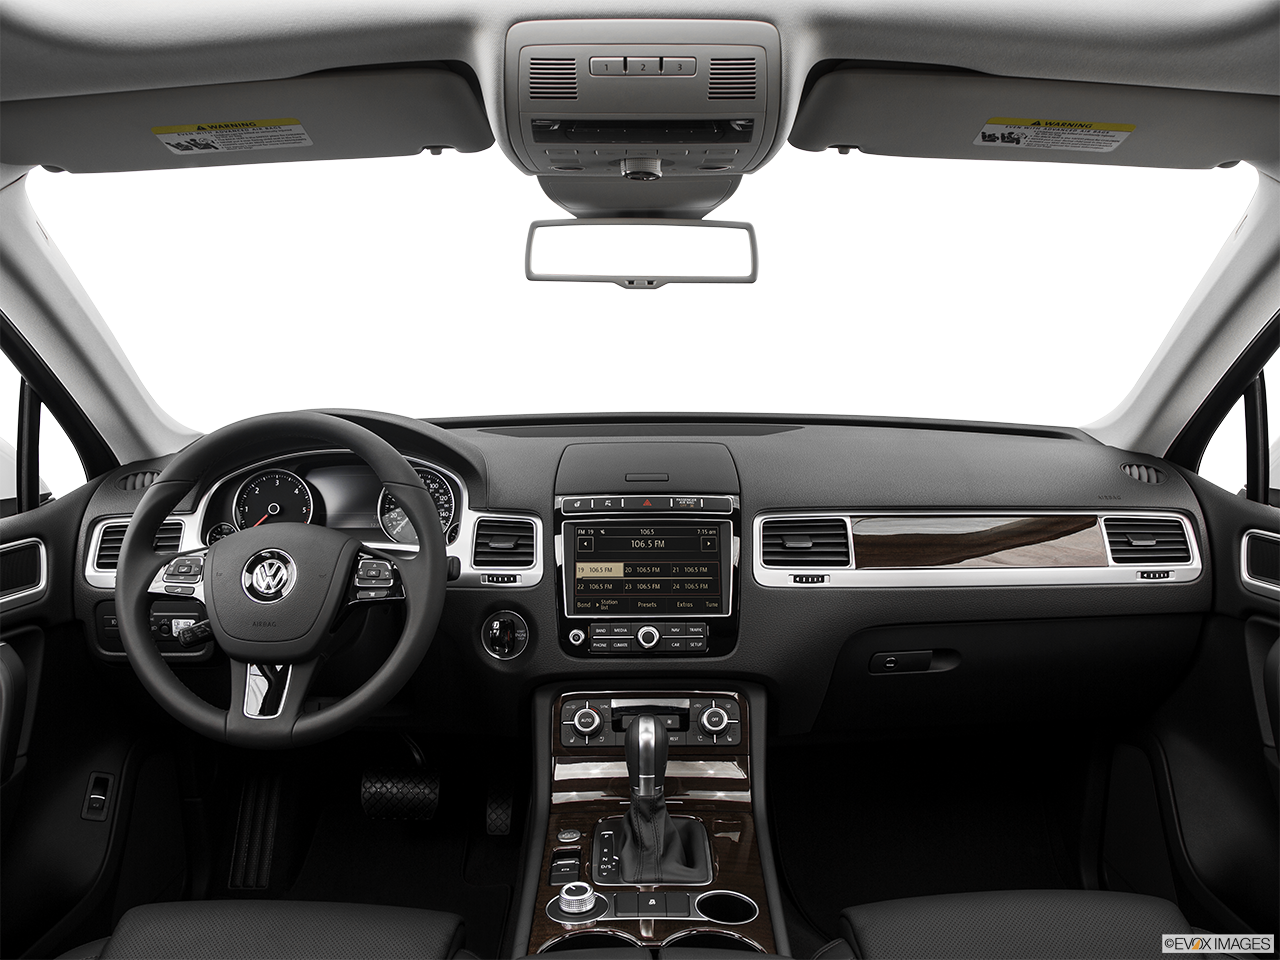 Interior View Of 2017 Volkswagen Touareg in San Diego